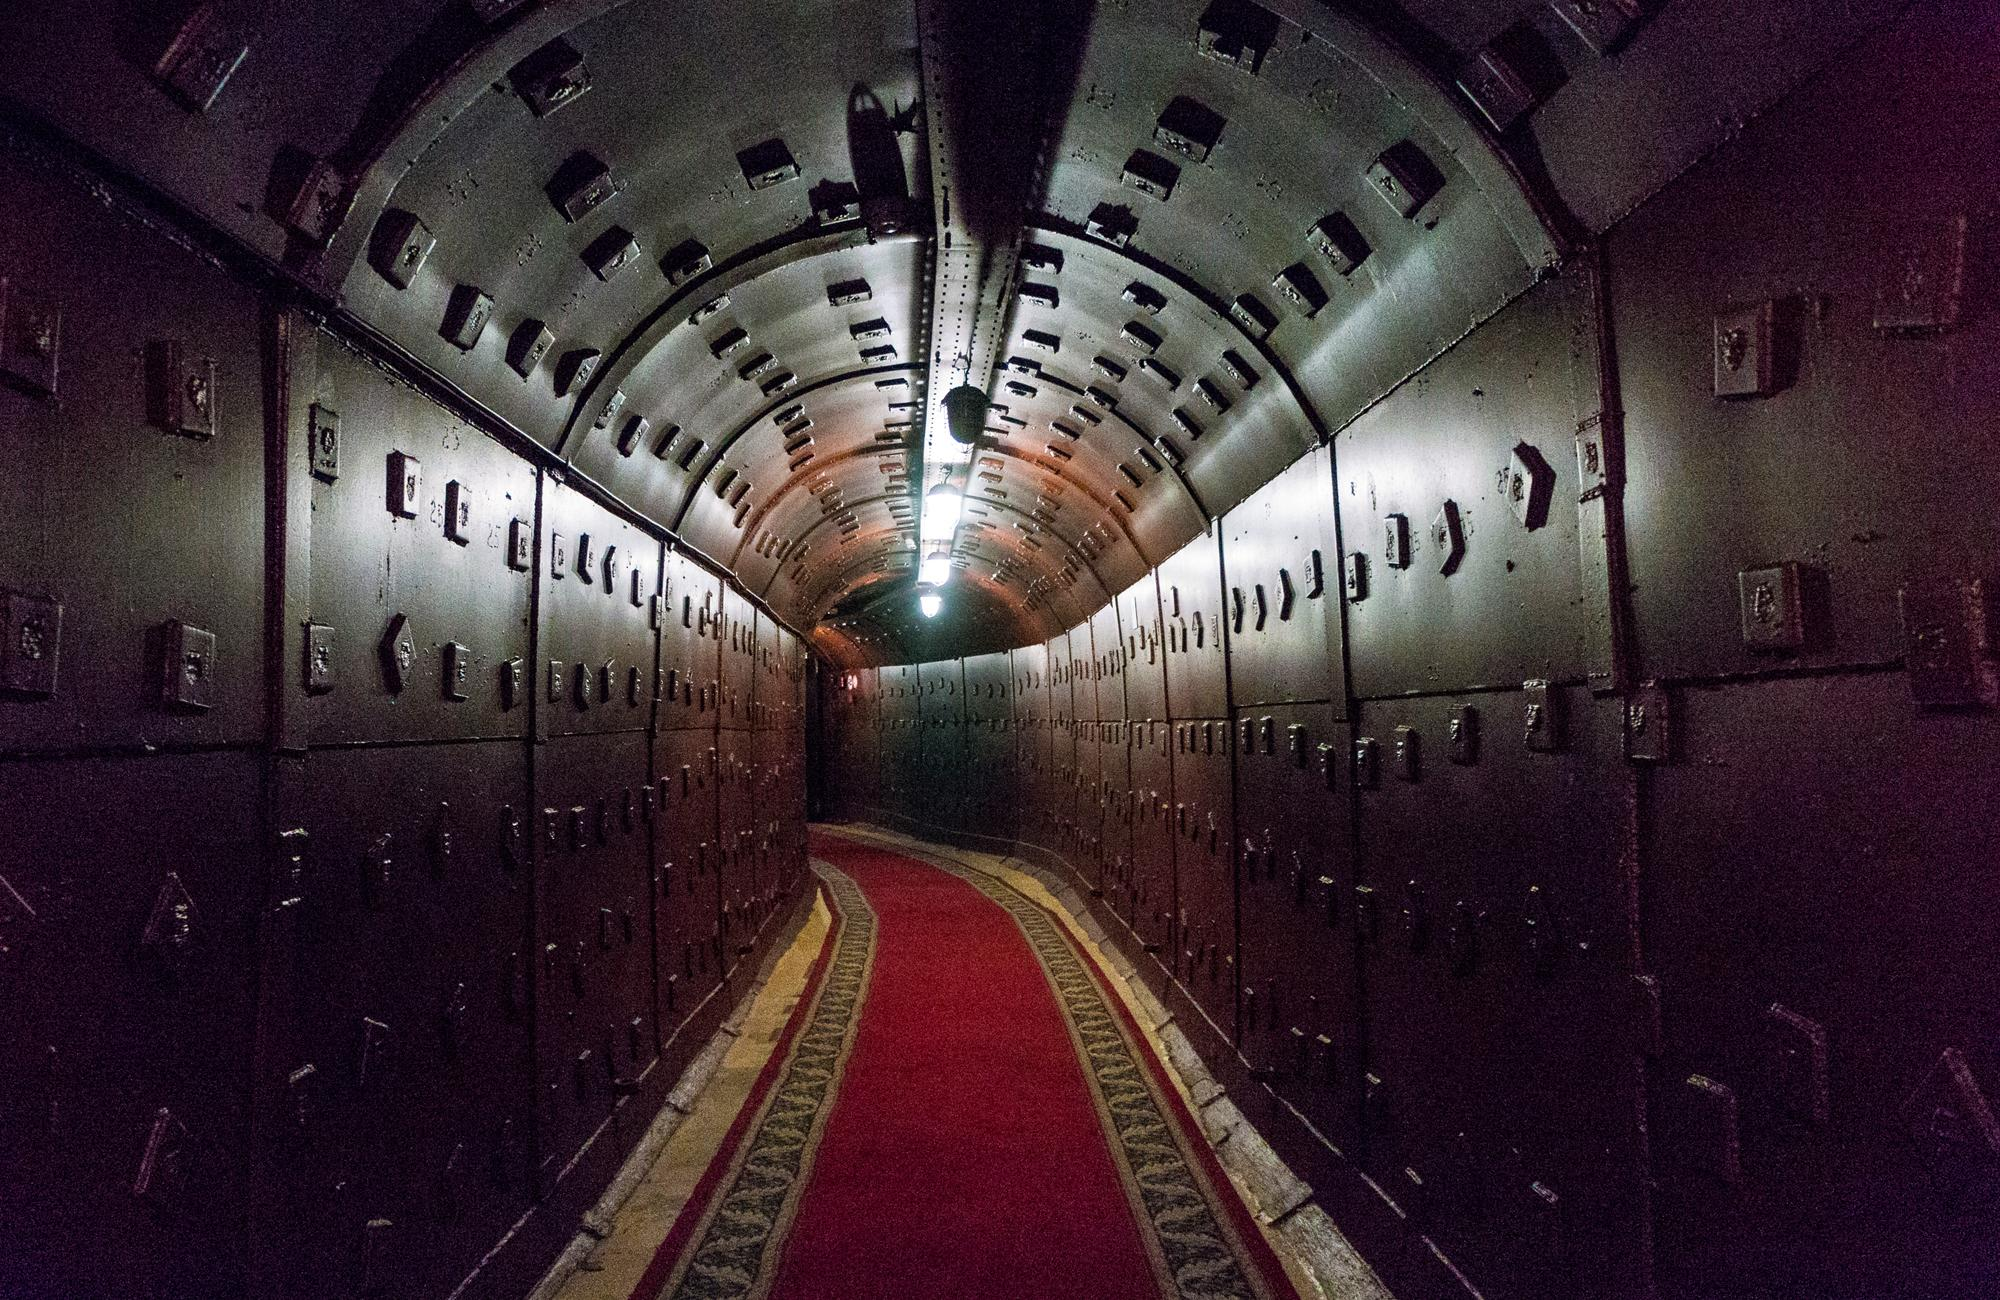 These 12 Formerly Top-Secret Bunkers Are Now Tourist Attractions